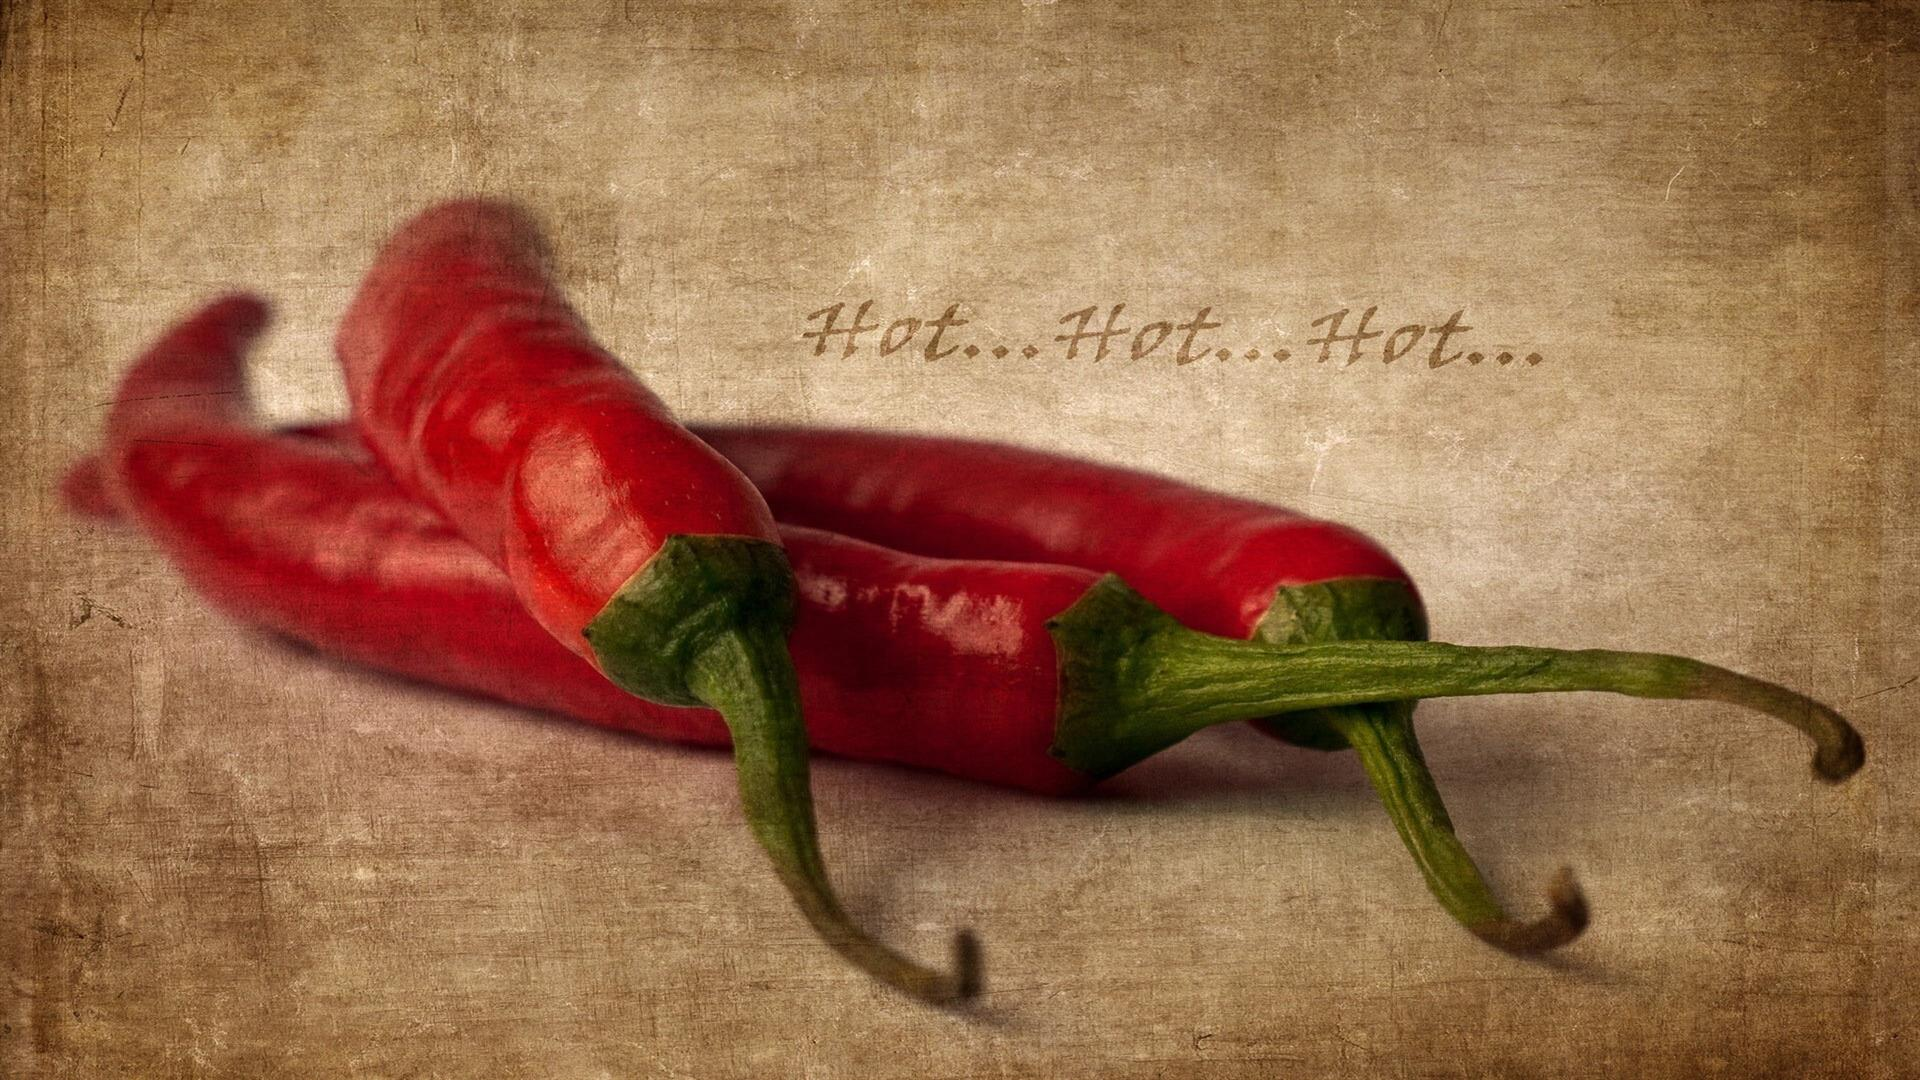 1920x1080 Hot Chili Wallpaper